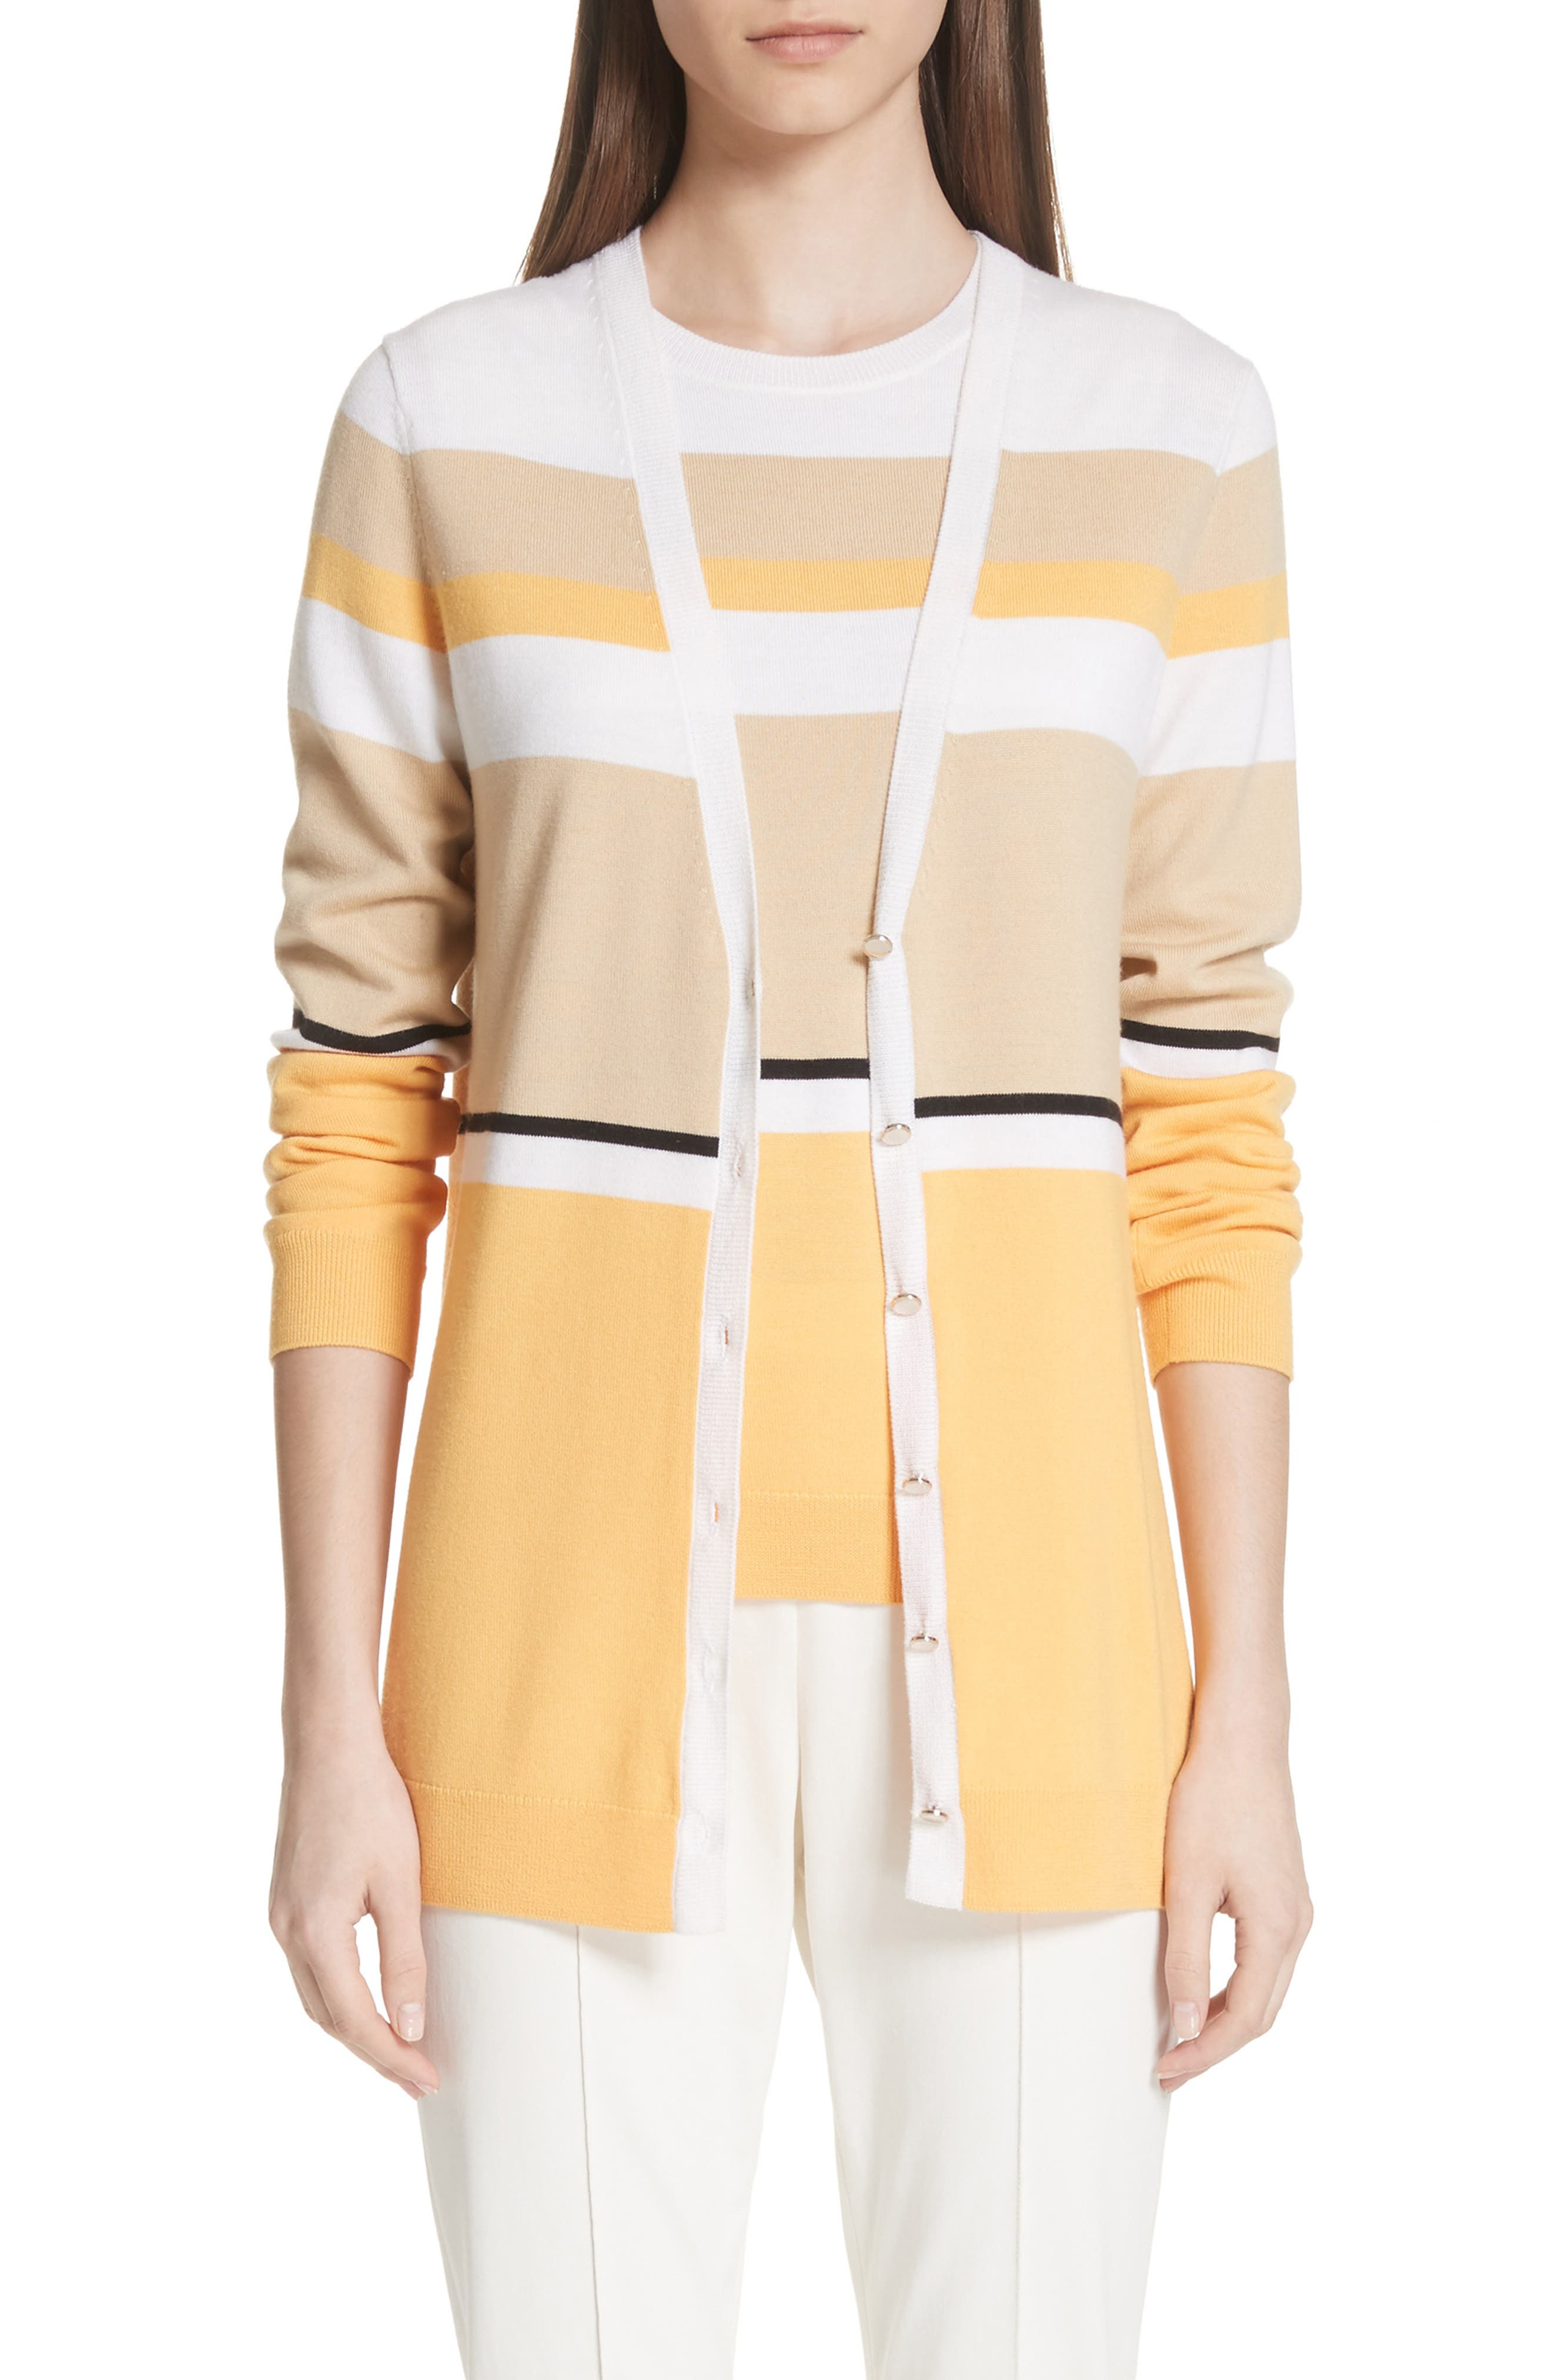 Stripe Jersey Knit Cardigan,                             Main thumbnail 1, color,                             White Multi